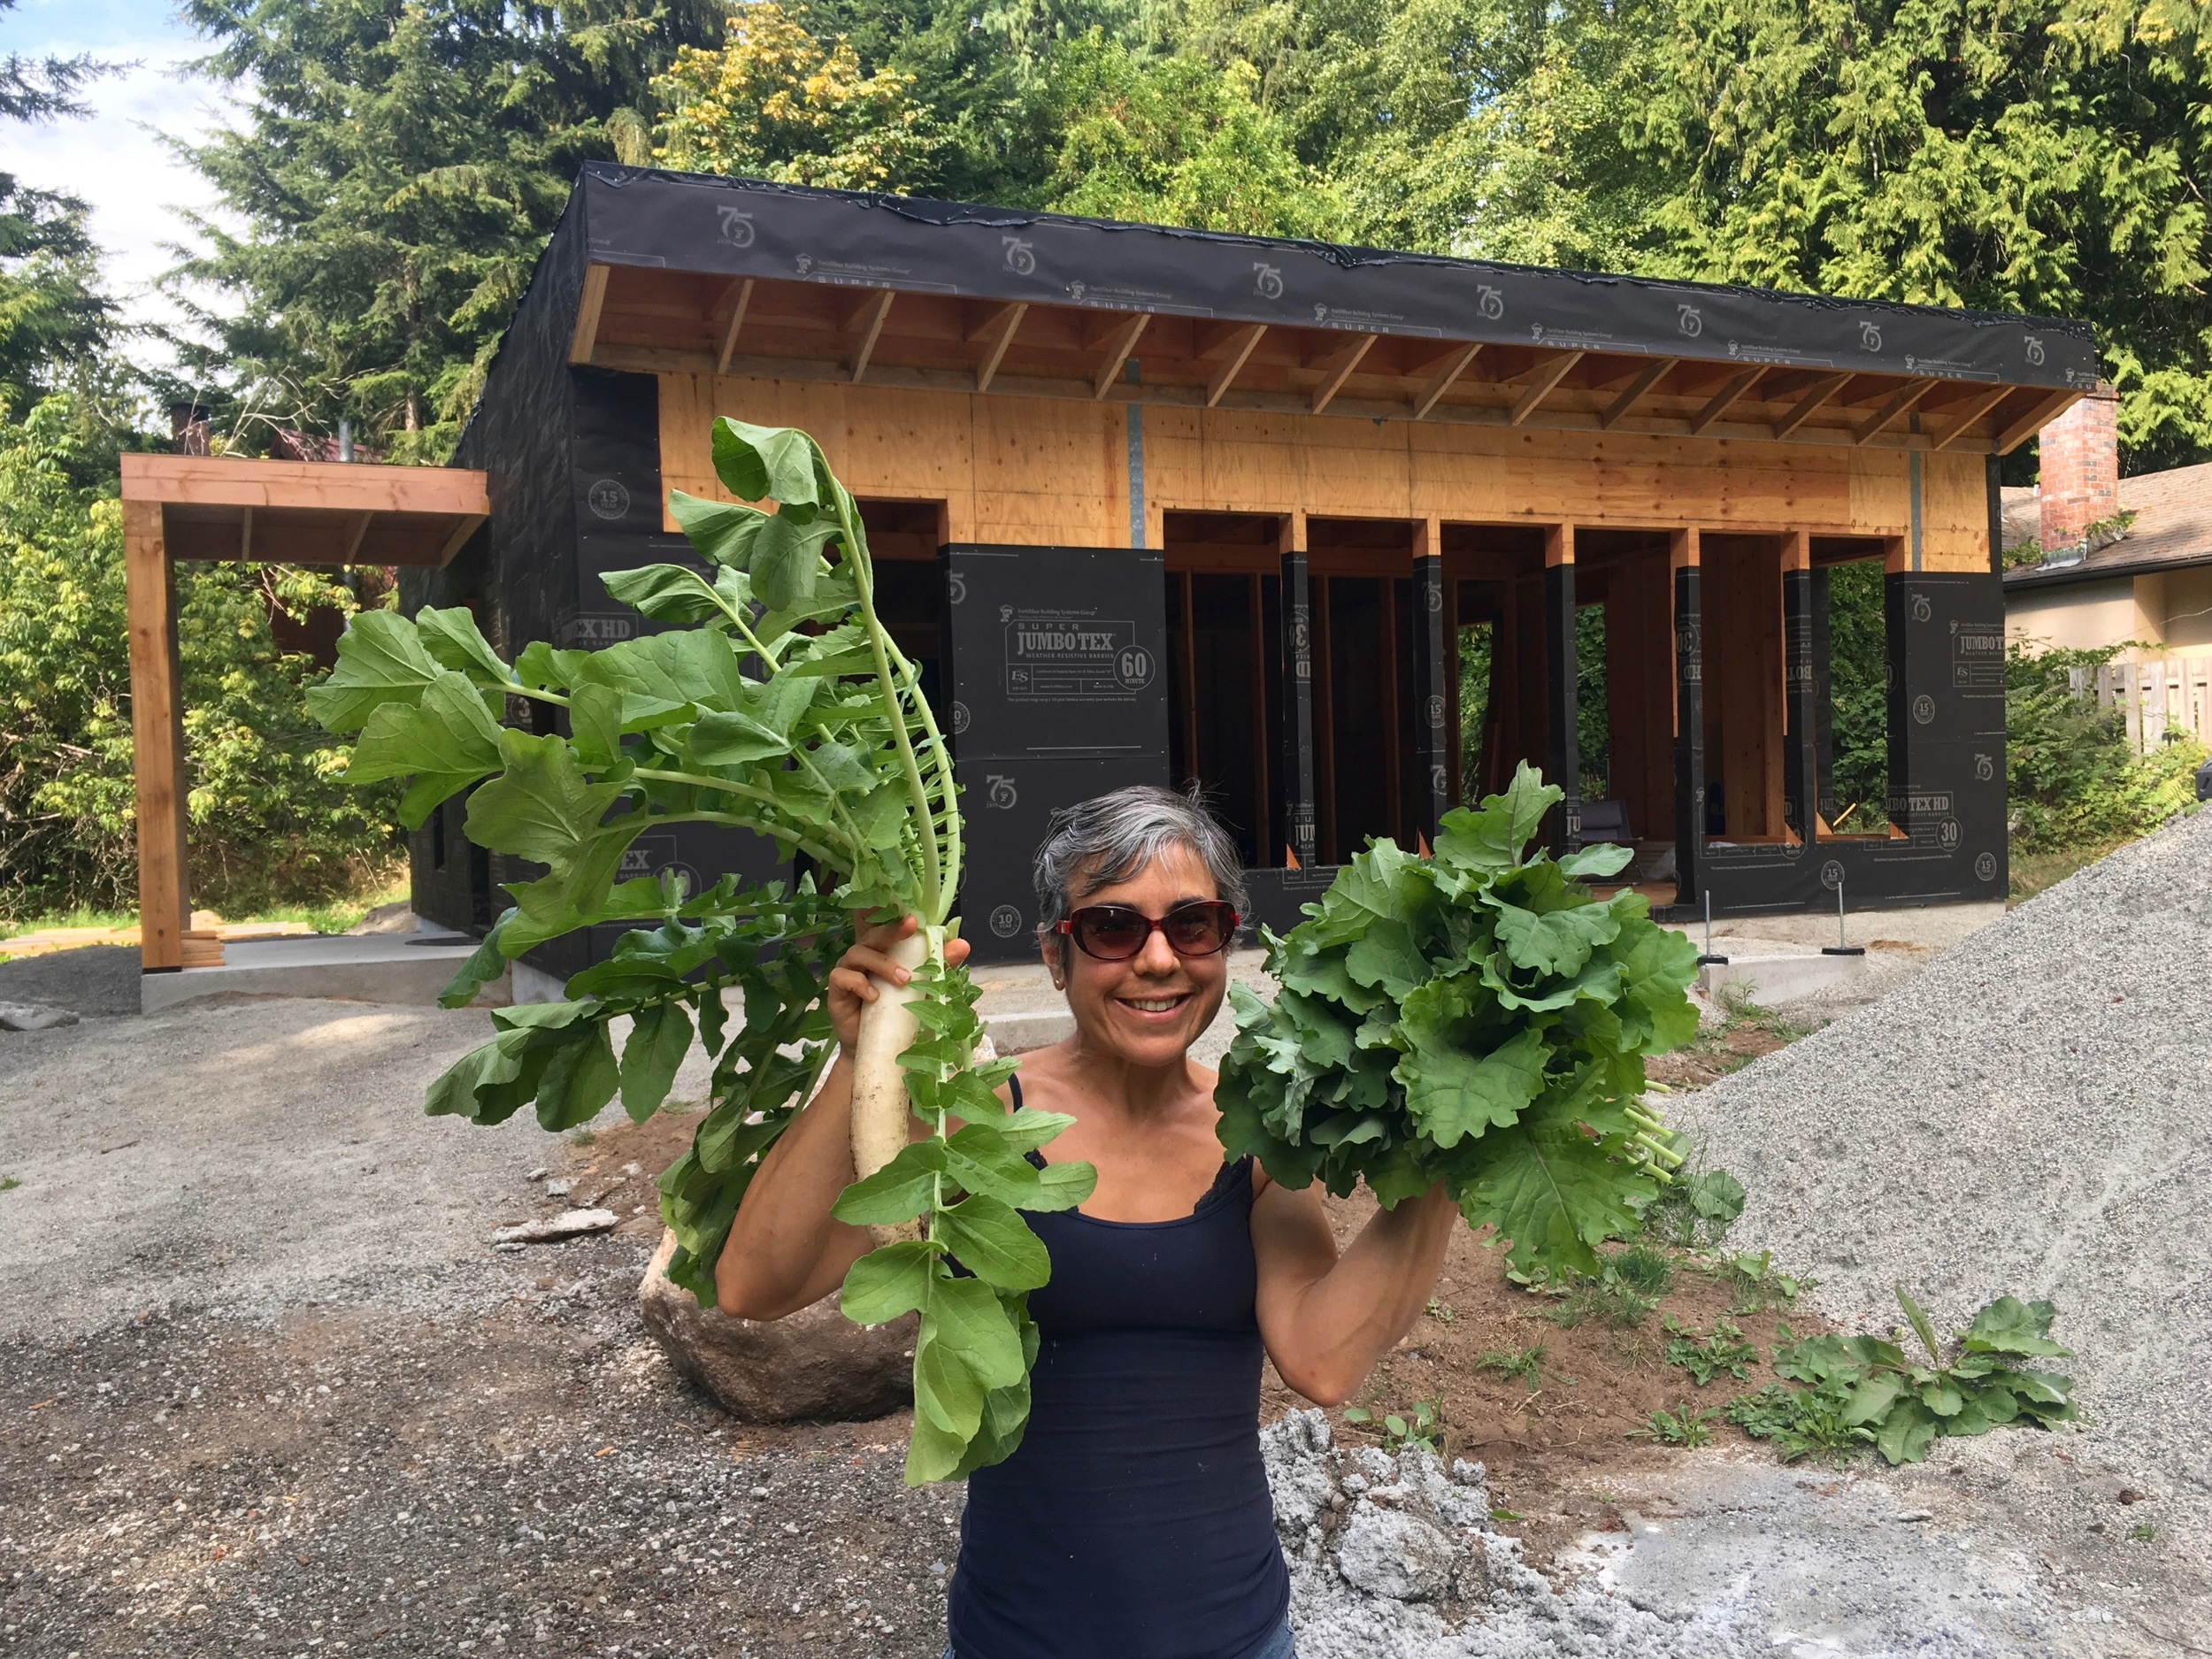 Me with my GIANT daikon radish and a bunch of kale - it already feels like home!